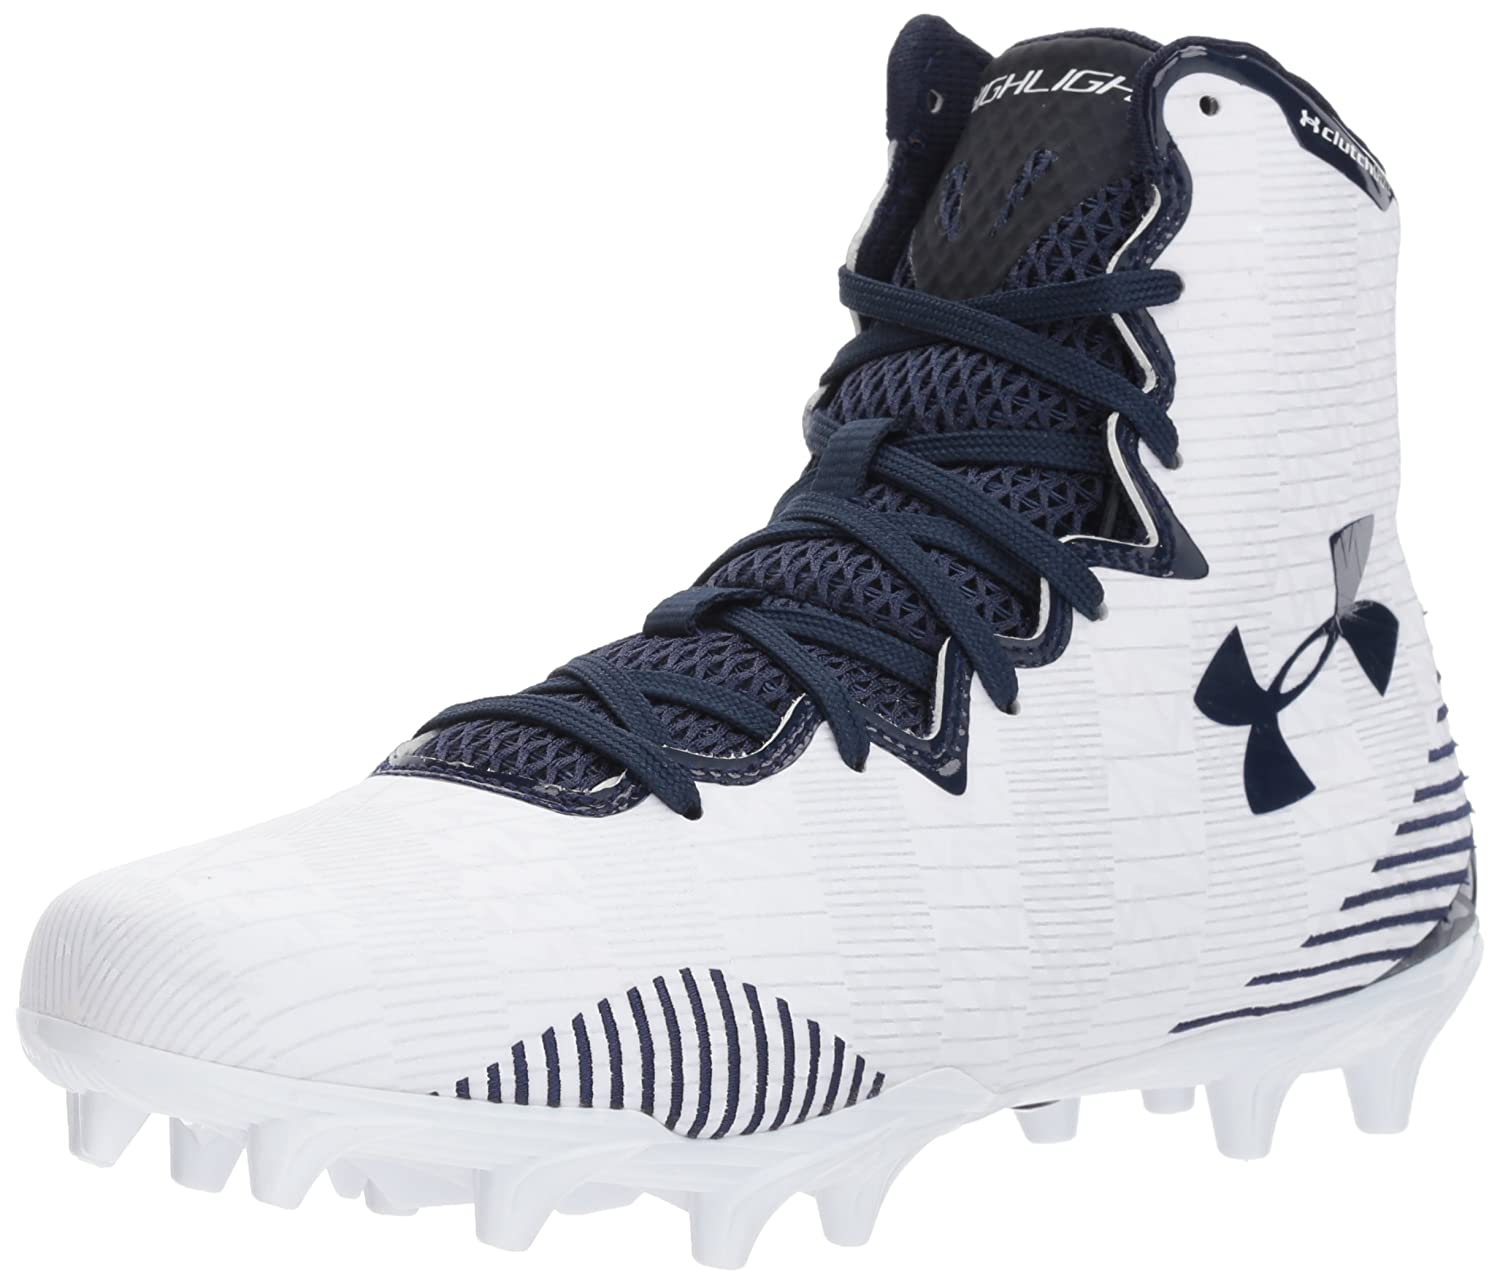 Under Armour Women's Lax Highlight MC Lacrosse Shoe B06XNLC9M6 9.5 M US|White (101)/Midnight Navy